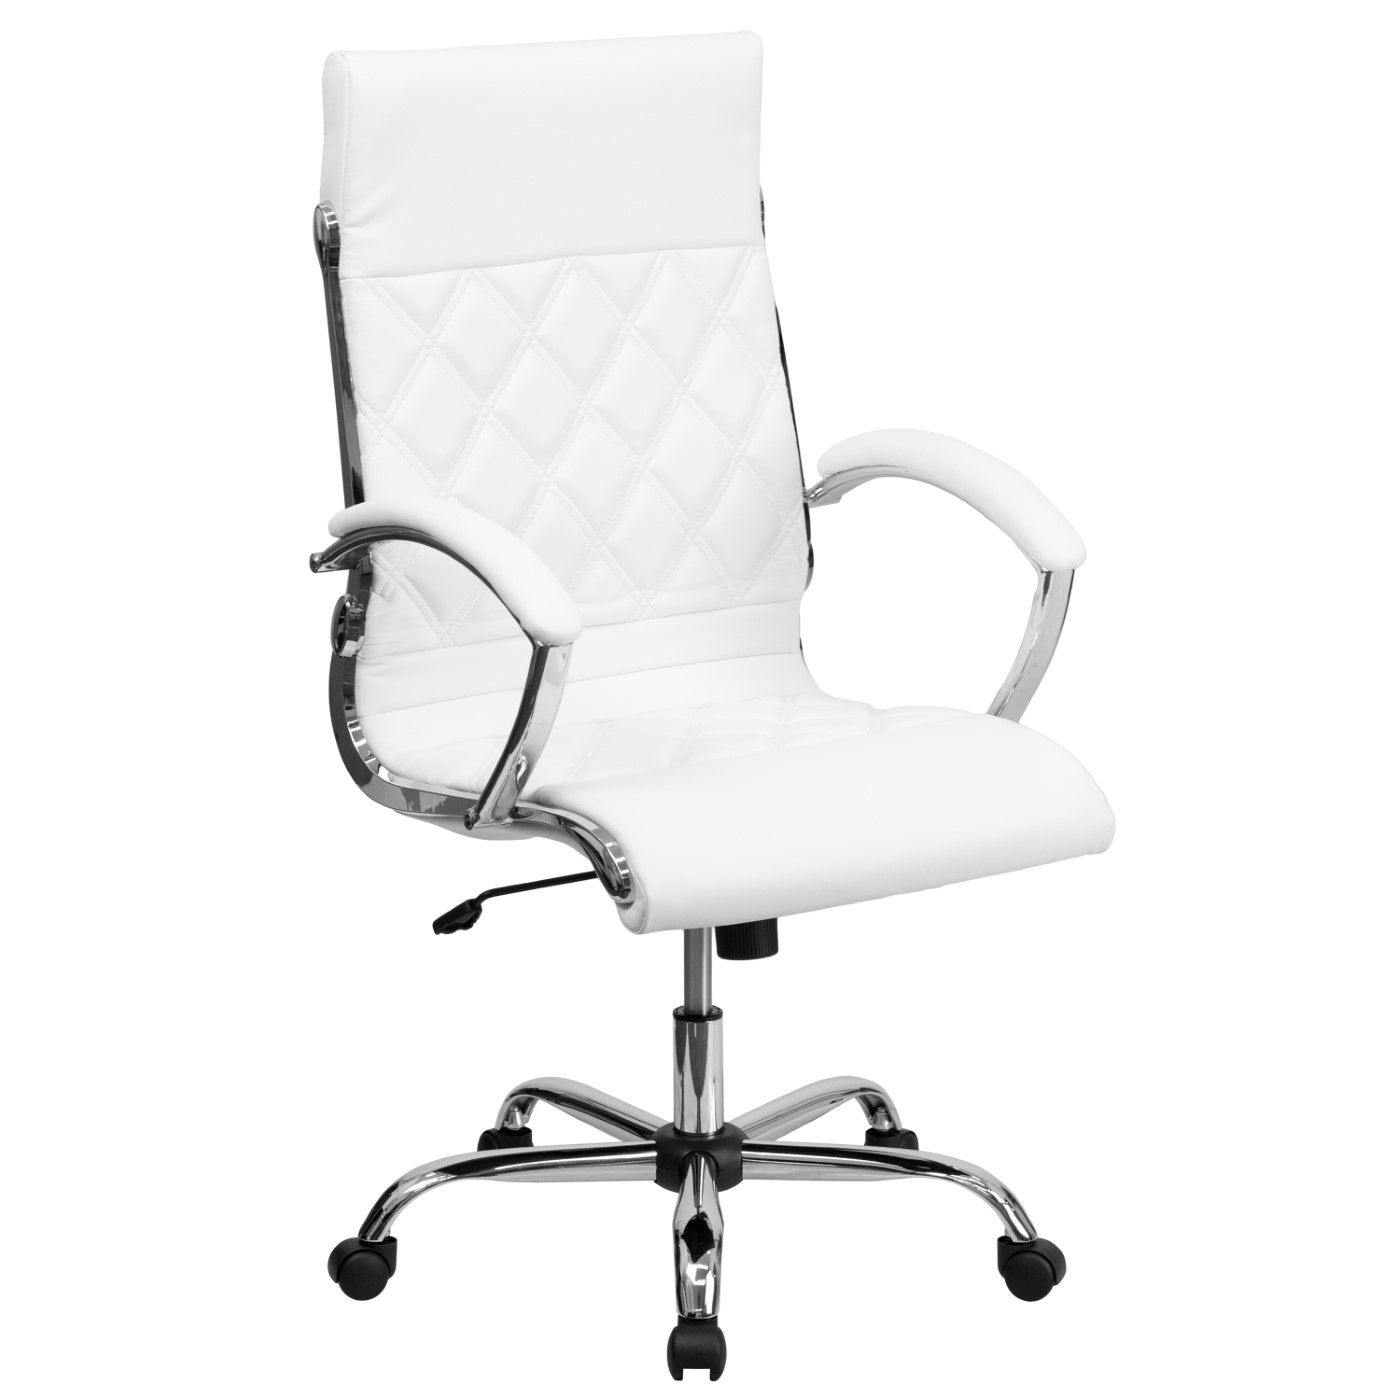 High Back Designer Quilted White LeatherSoft Executive Swivel Office Chair with Chrome Base and Arms